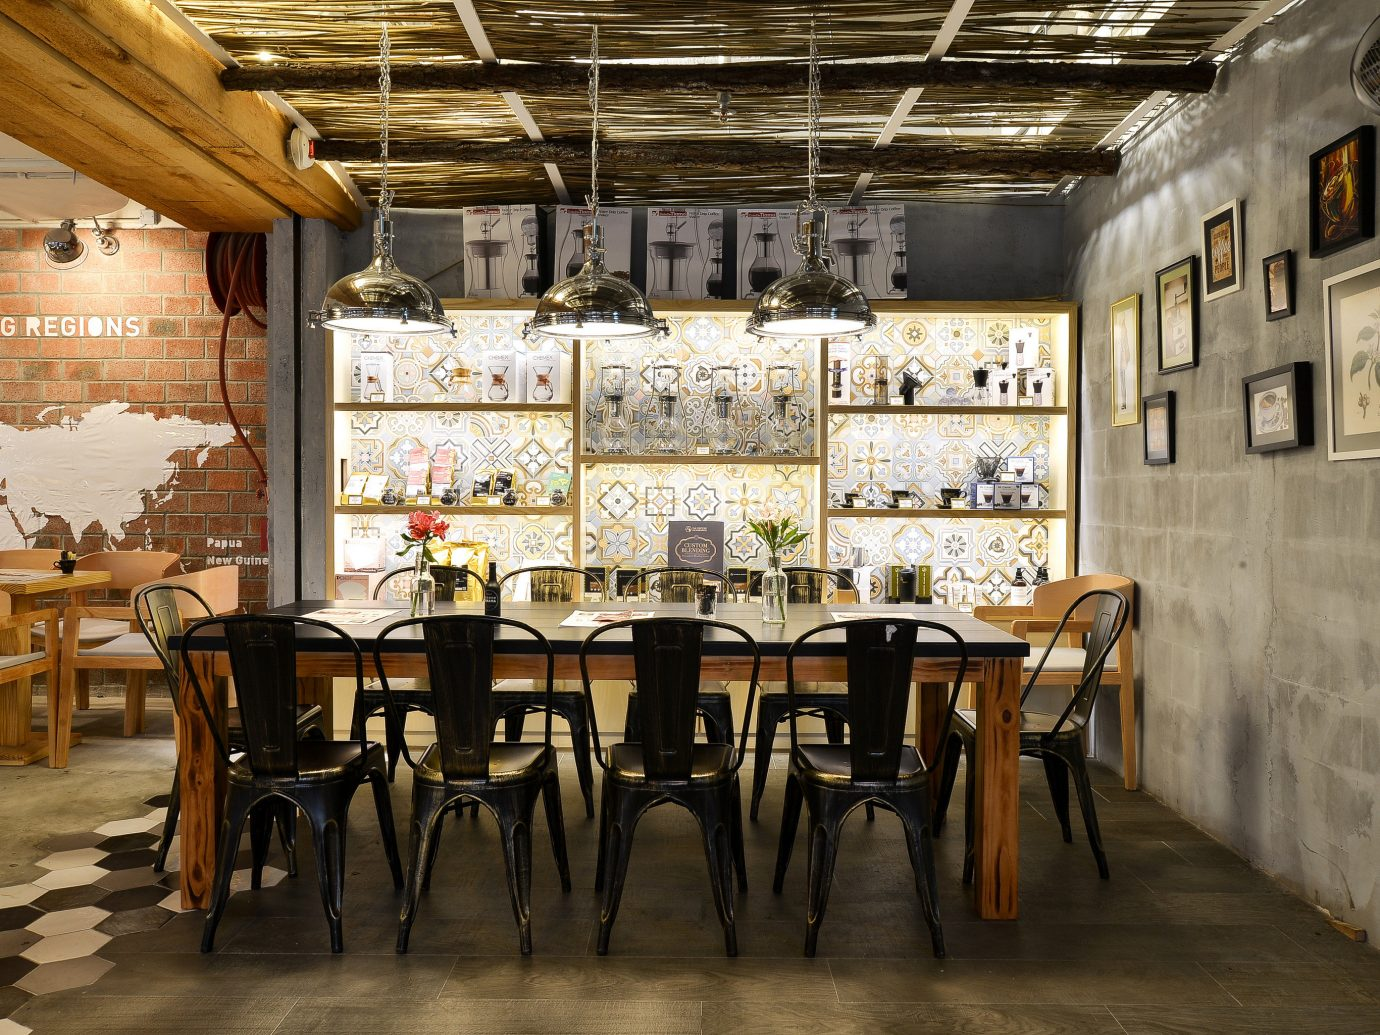 Food + Drink Offbeat Travel Trends floor indoor table chair interior design dining room restaurant furniture Dining café several